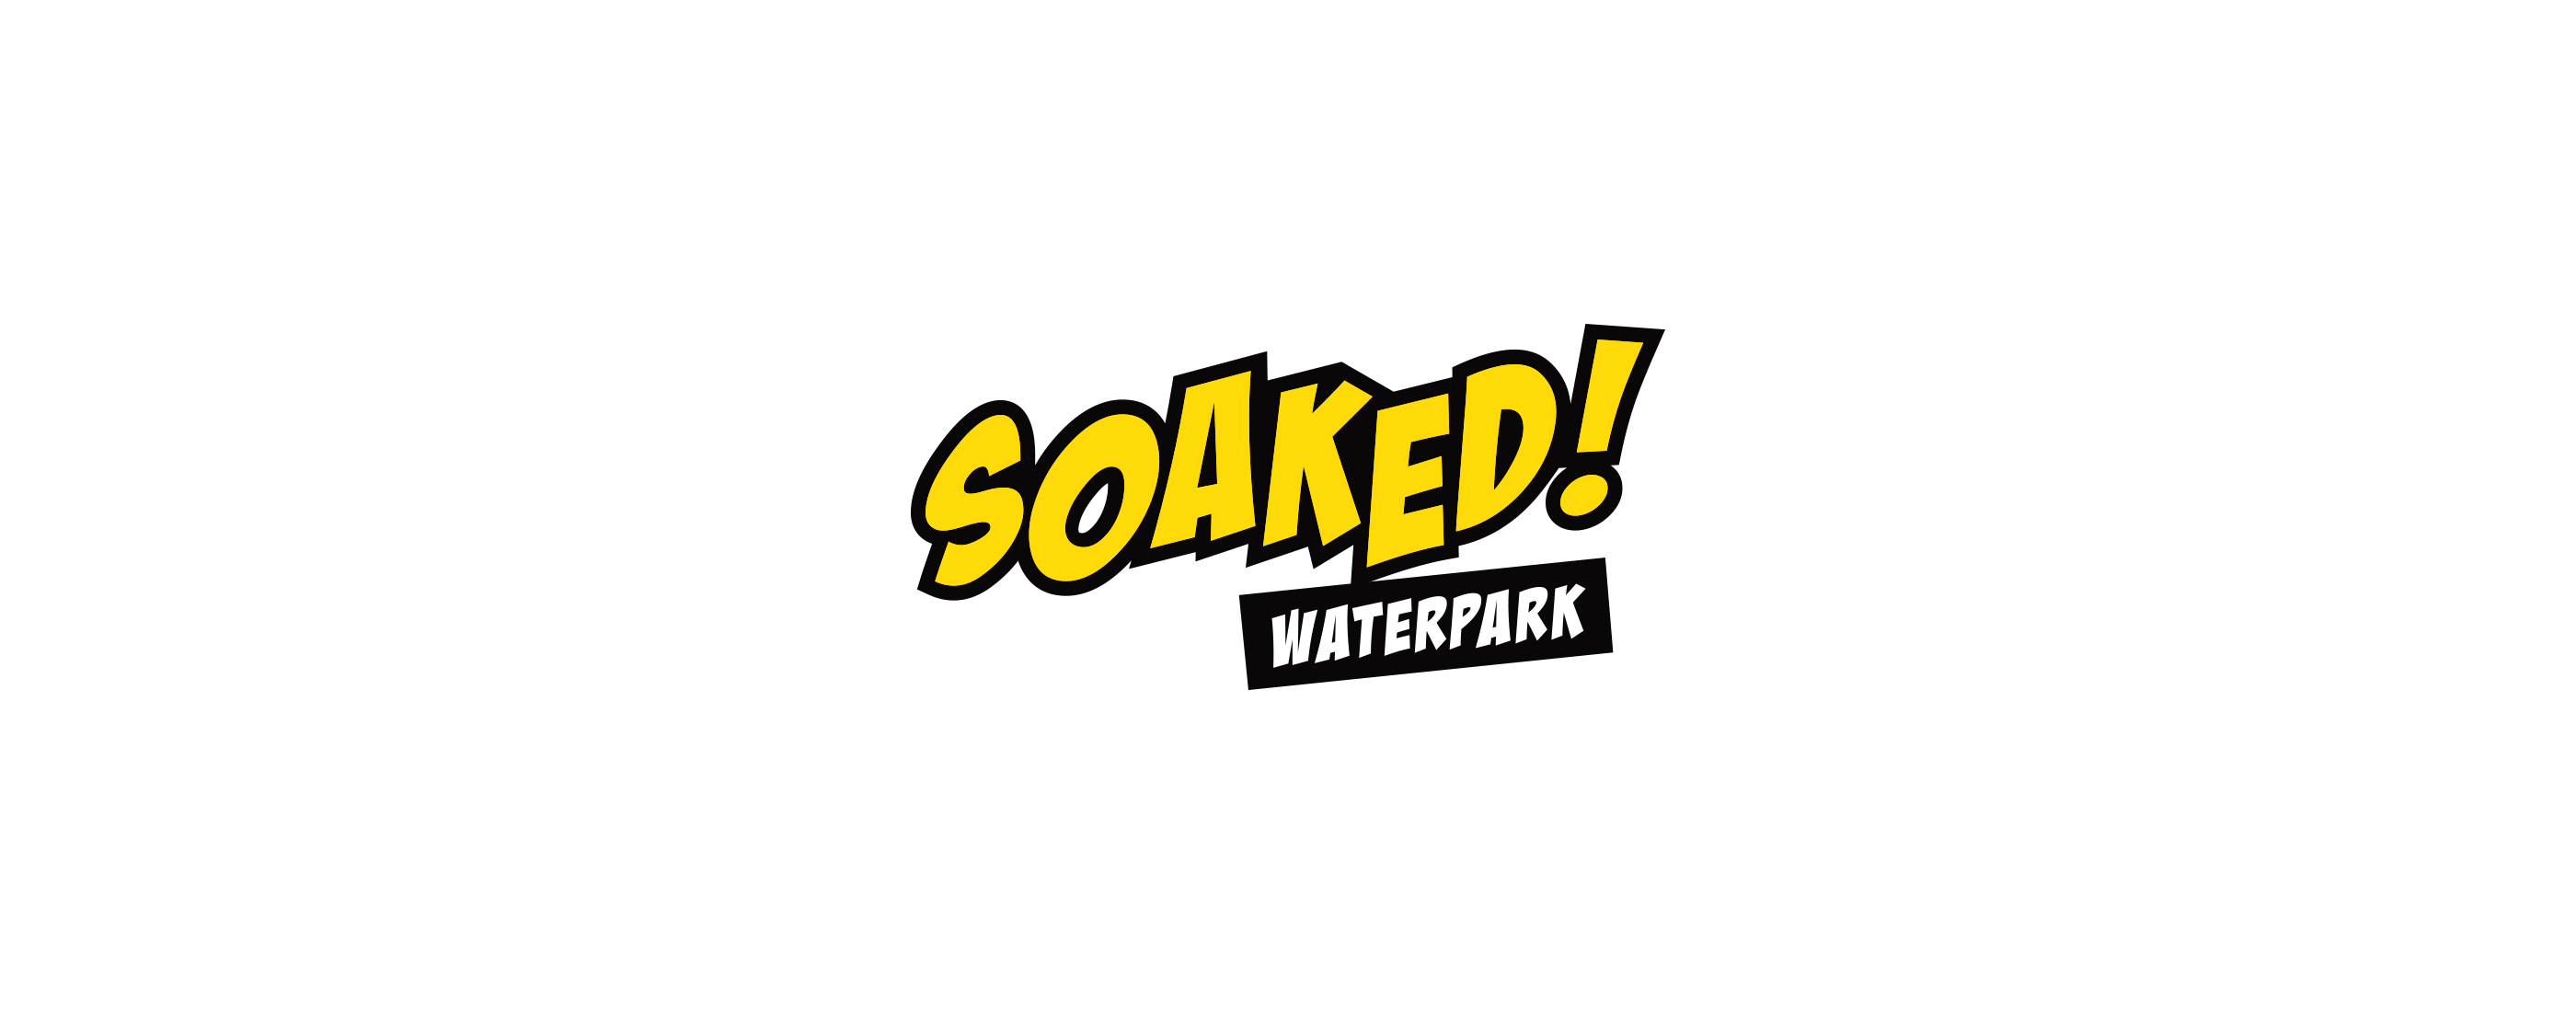 Work - Soaked Waterpark - Regina - Logo